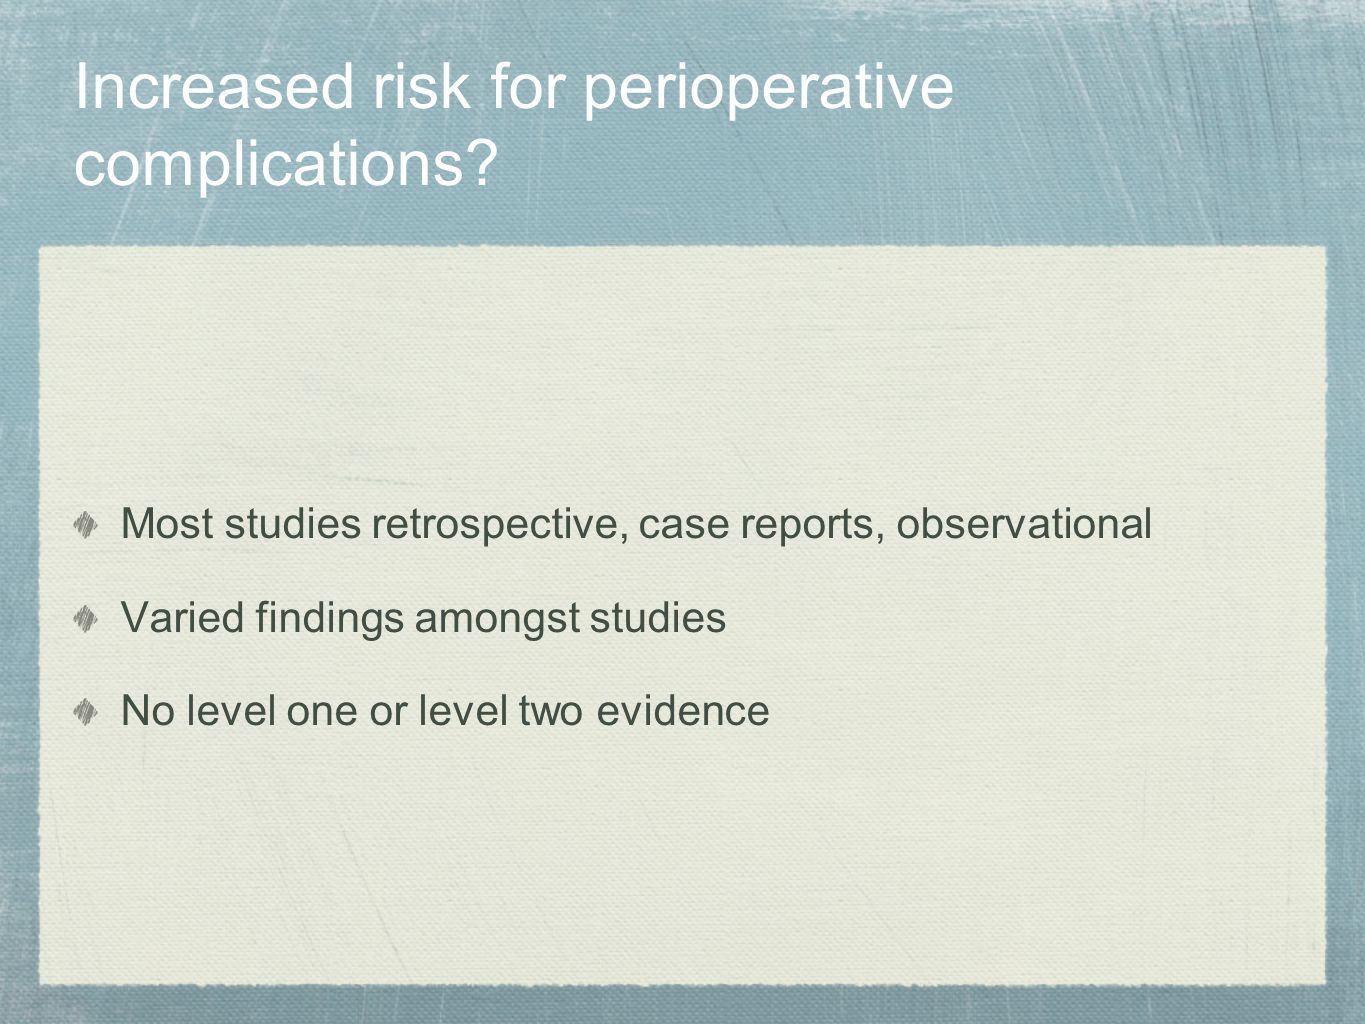 Increased risk for perioperative complications? Most studies retrospective, case reports, observational Varied findings amongst studies No level one o